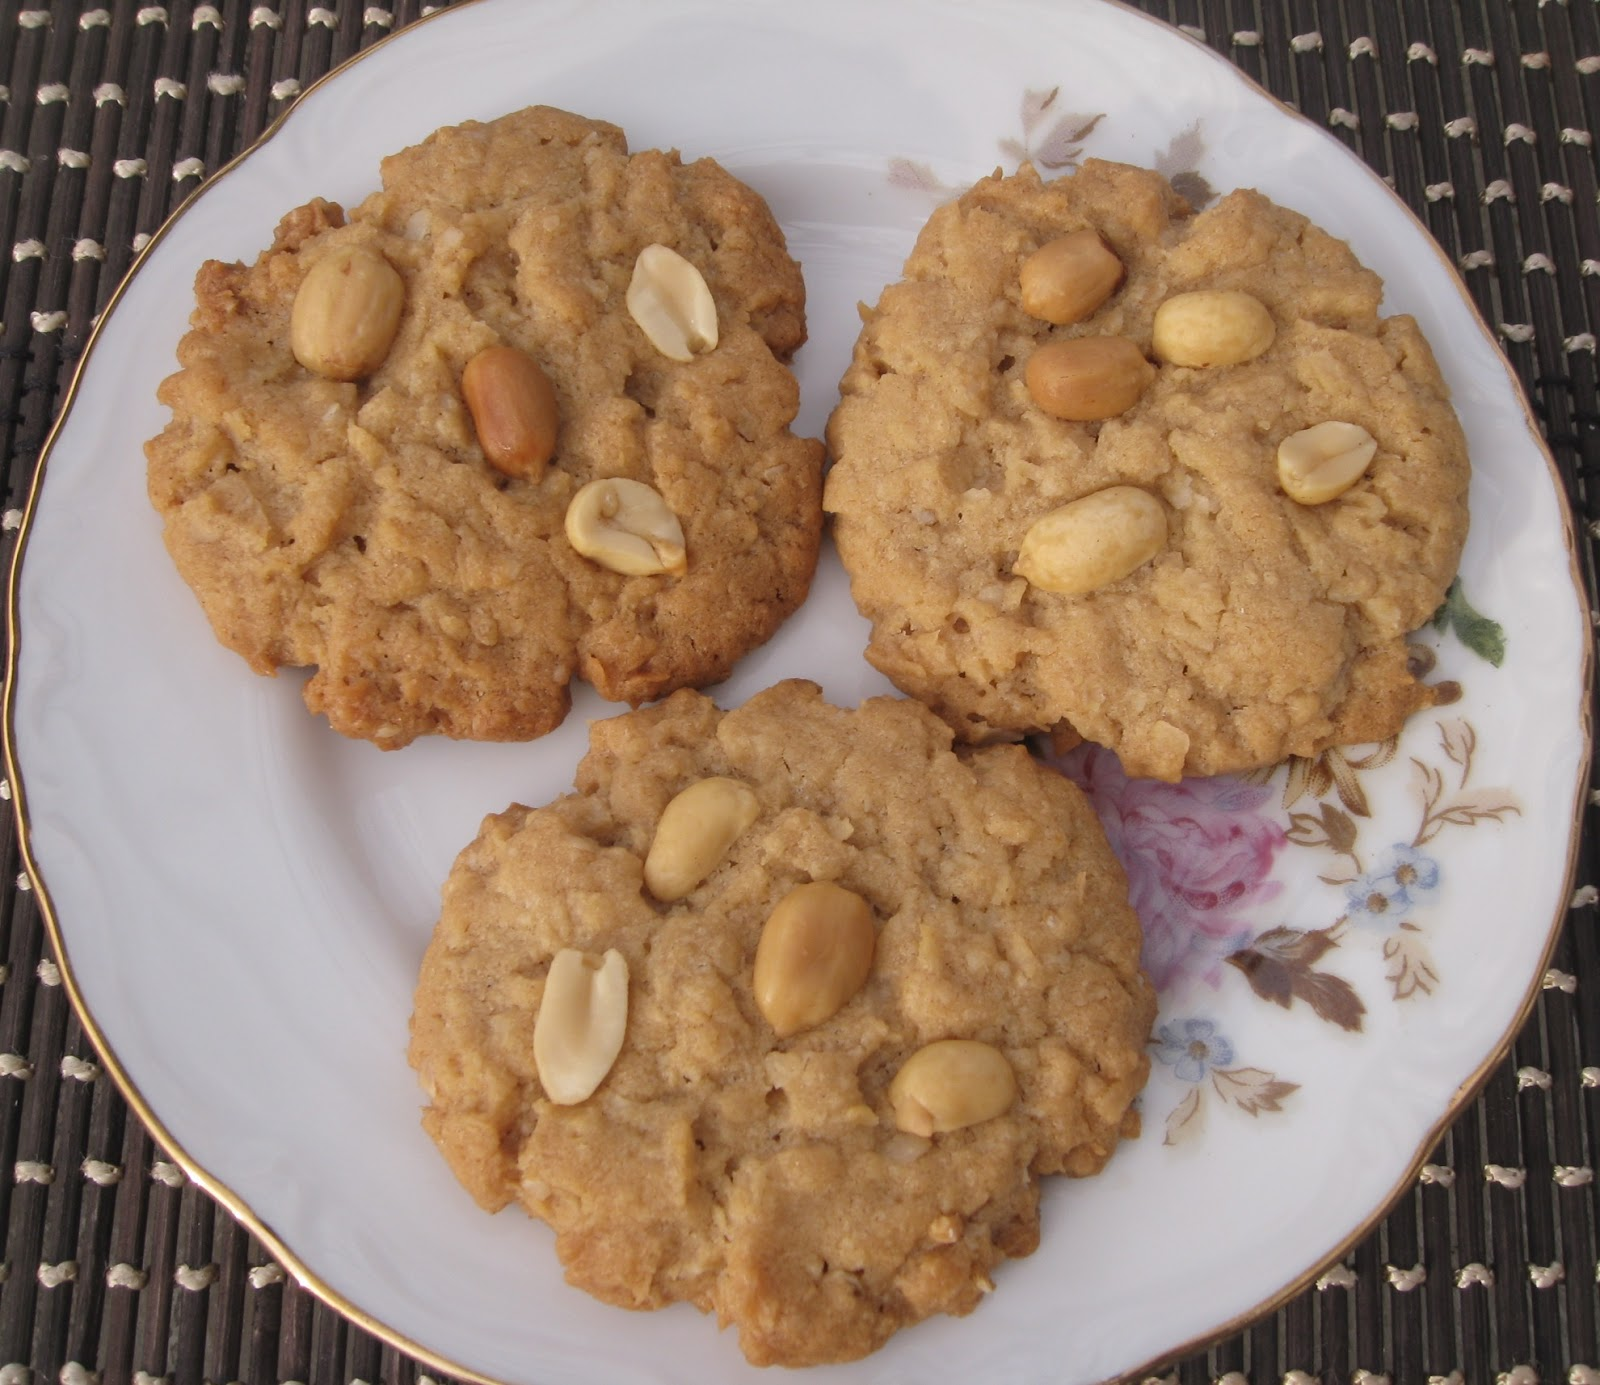 Coconut Flake and Peanut Butter Cookies | Beachloverkitchen